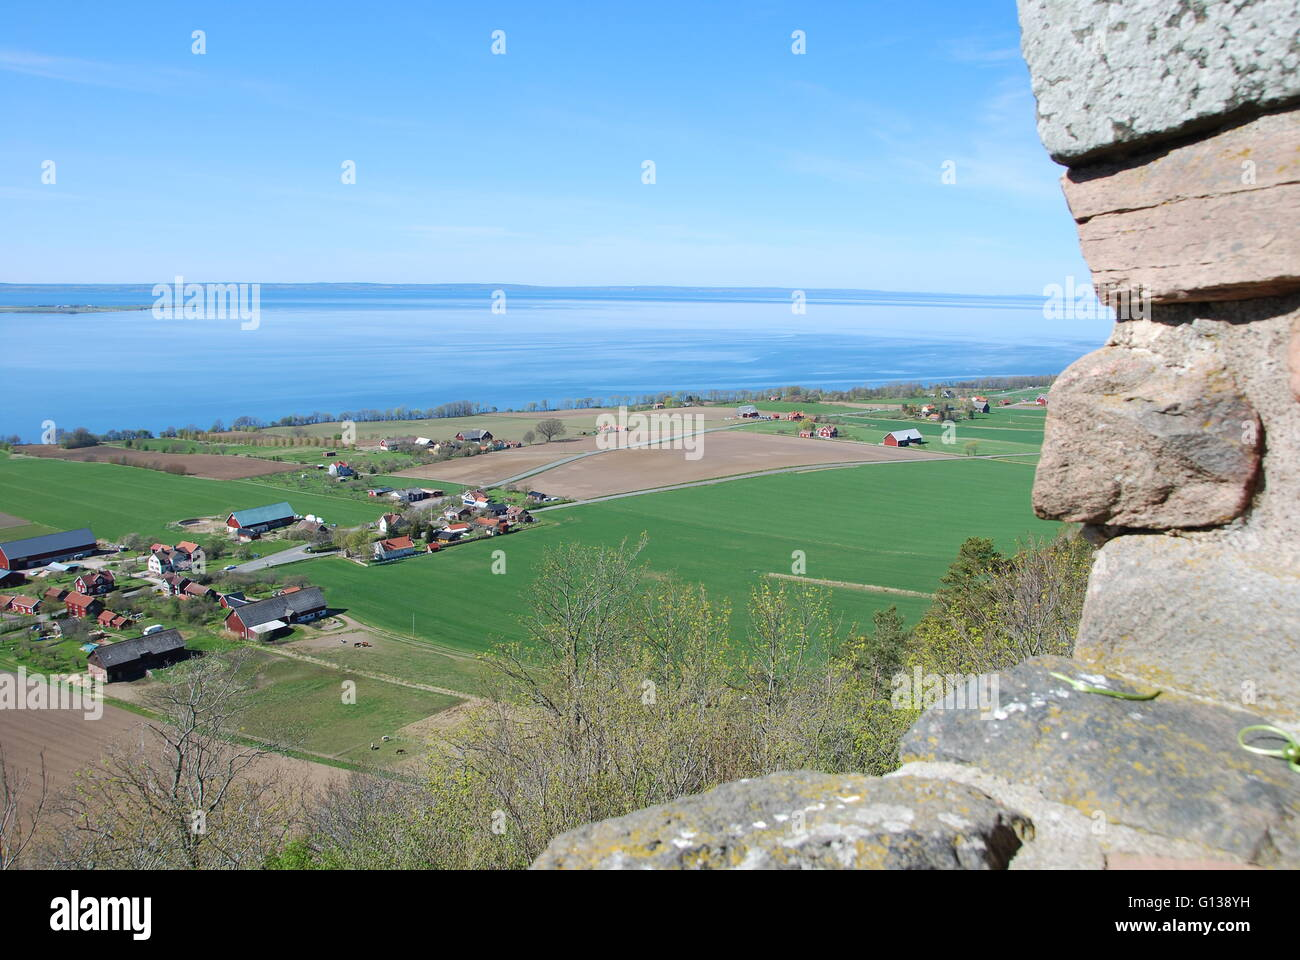 Brahehus view landscape and farmland, built by the Swedish lake Vättern, destroyed by fire 1708 - Stock Image